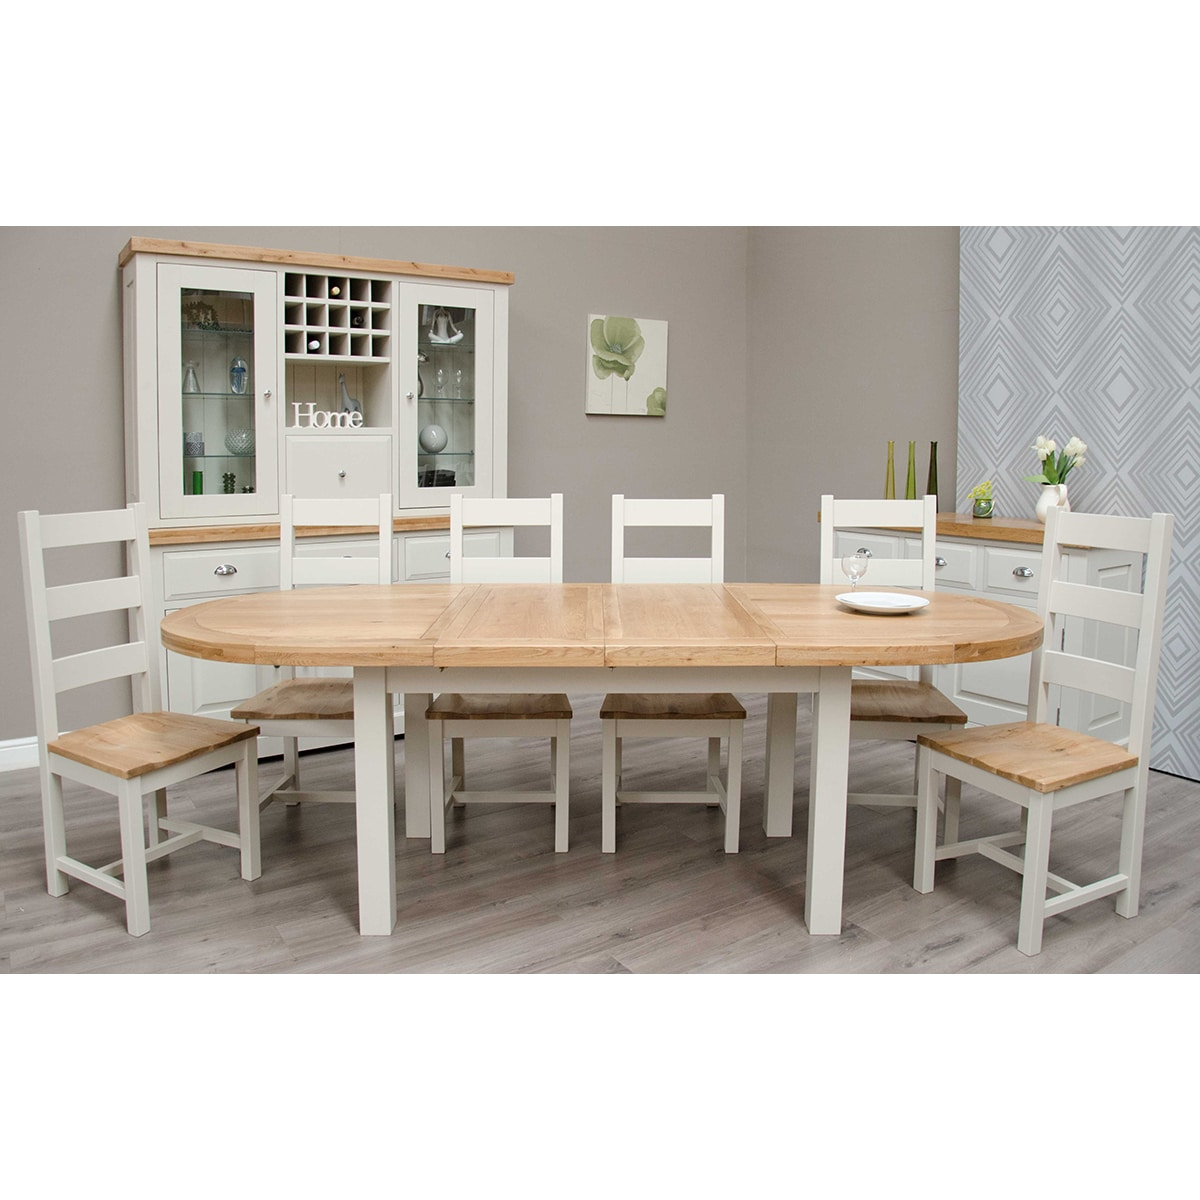 Wessex Oval Extending Table - WSXPOVAL